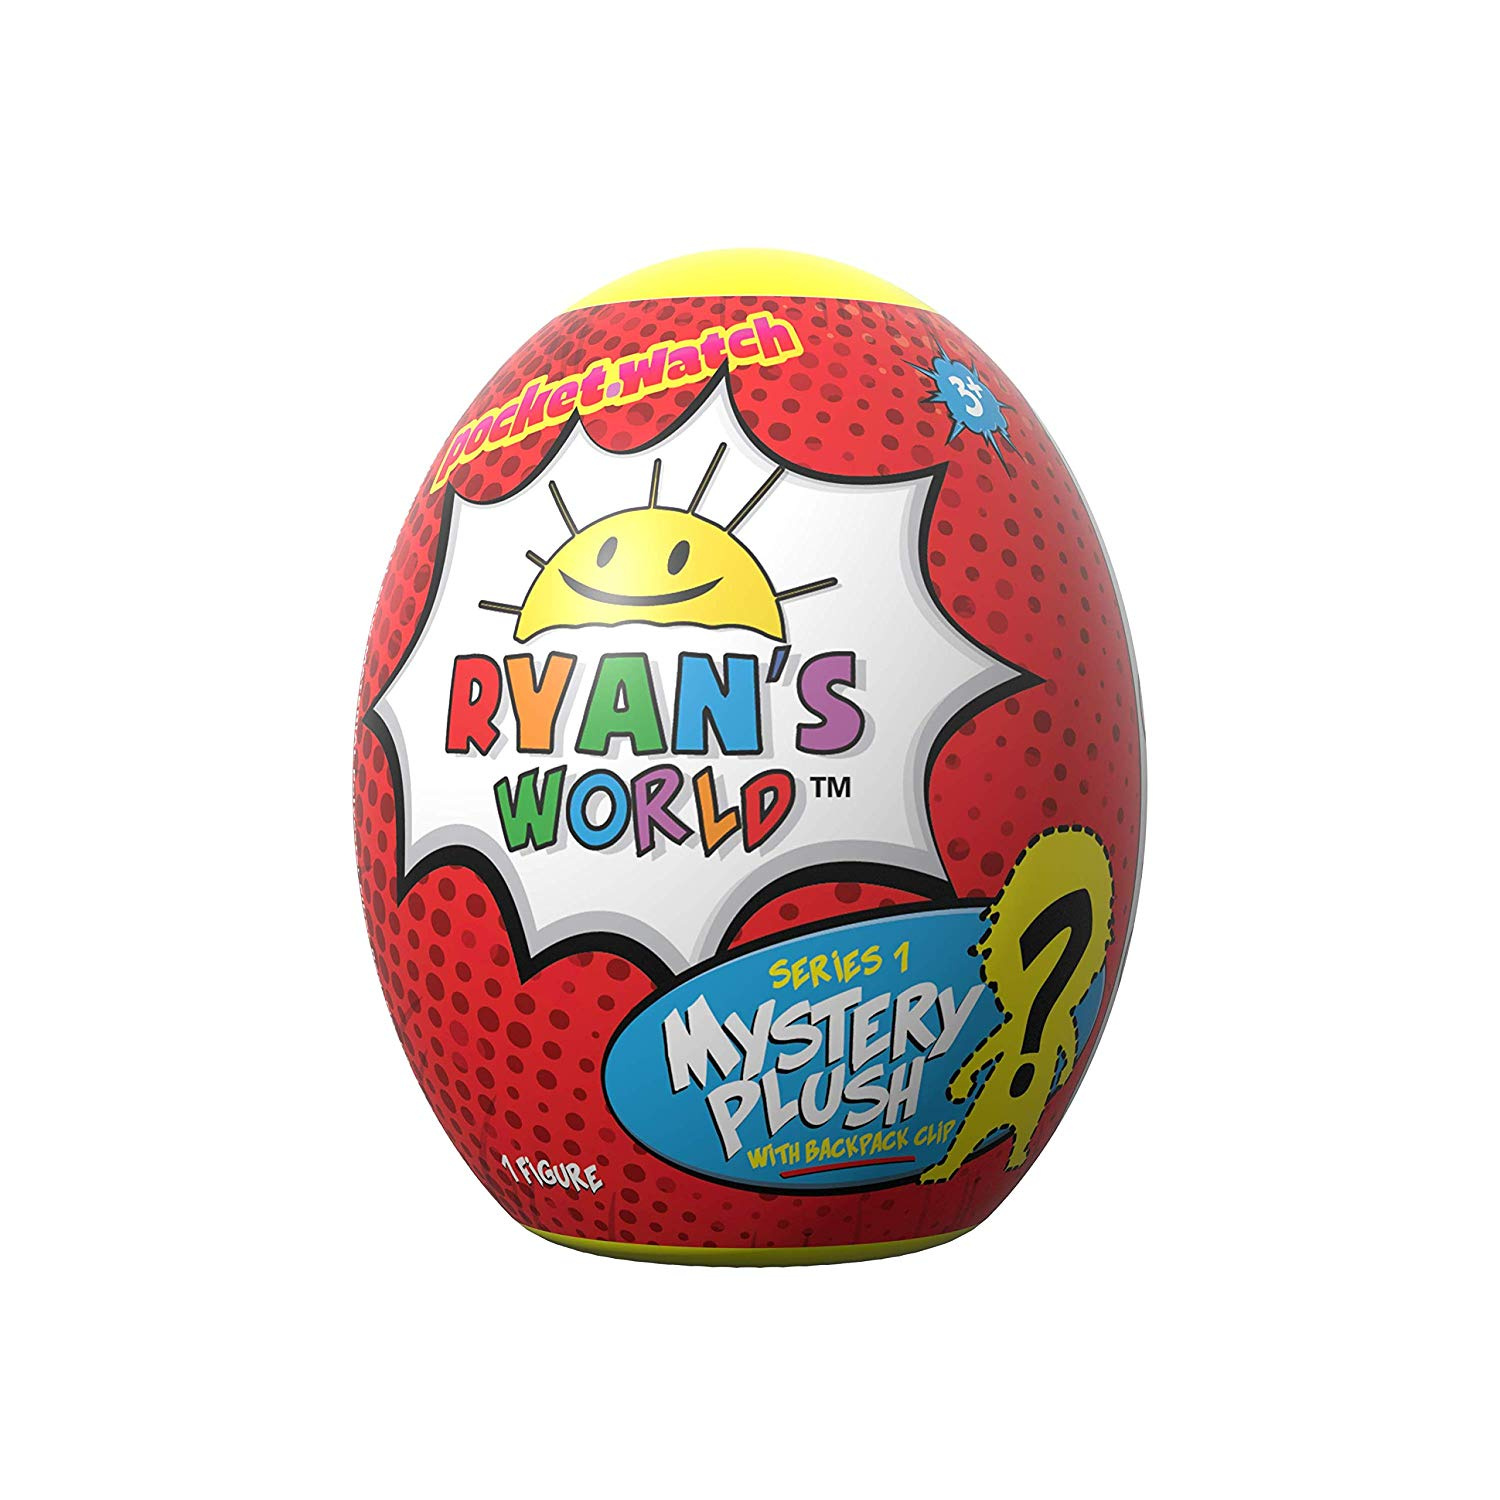 Ryans World Ultimate Jellies Surprise Playset with Storage Case from Ryans Toy Review Ryan/'s World